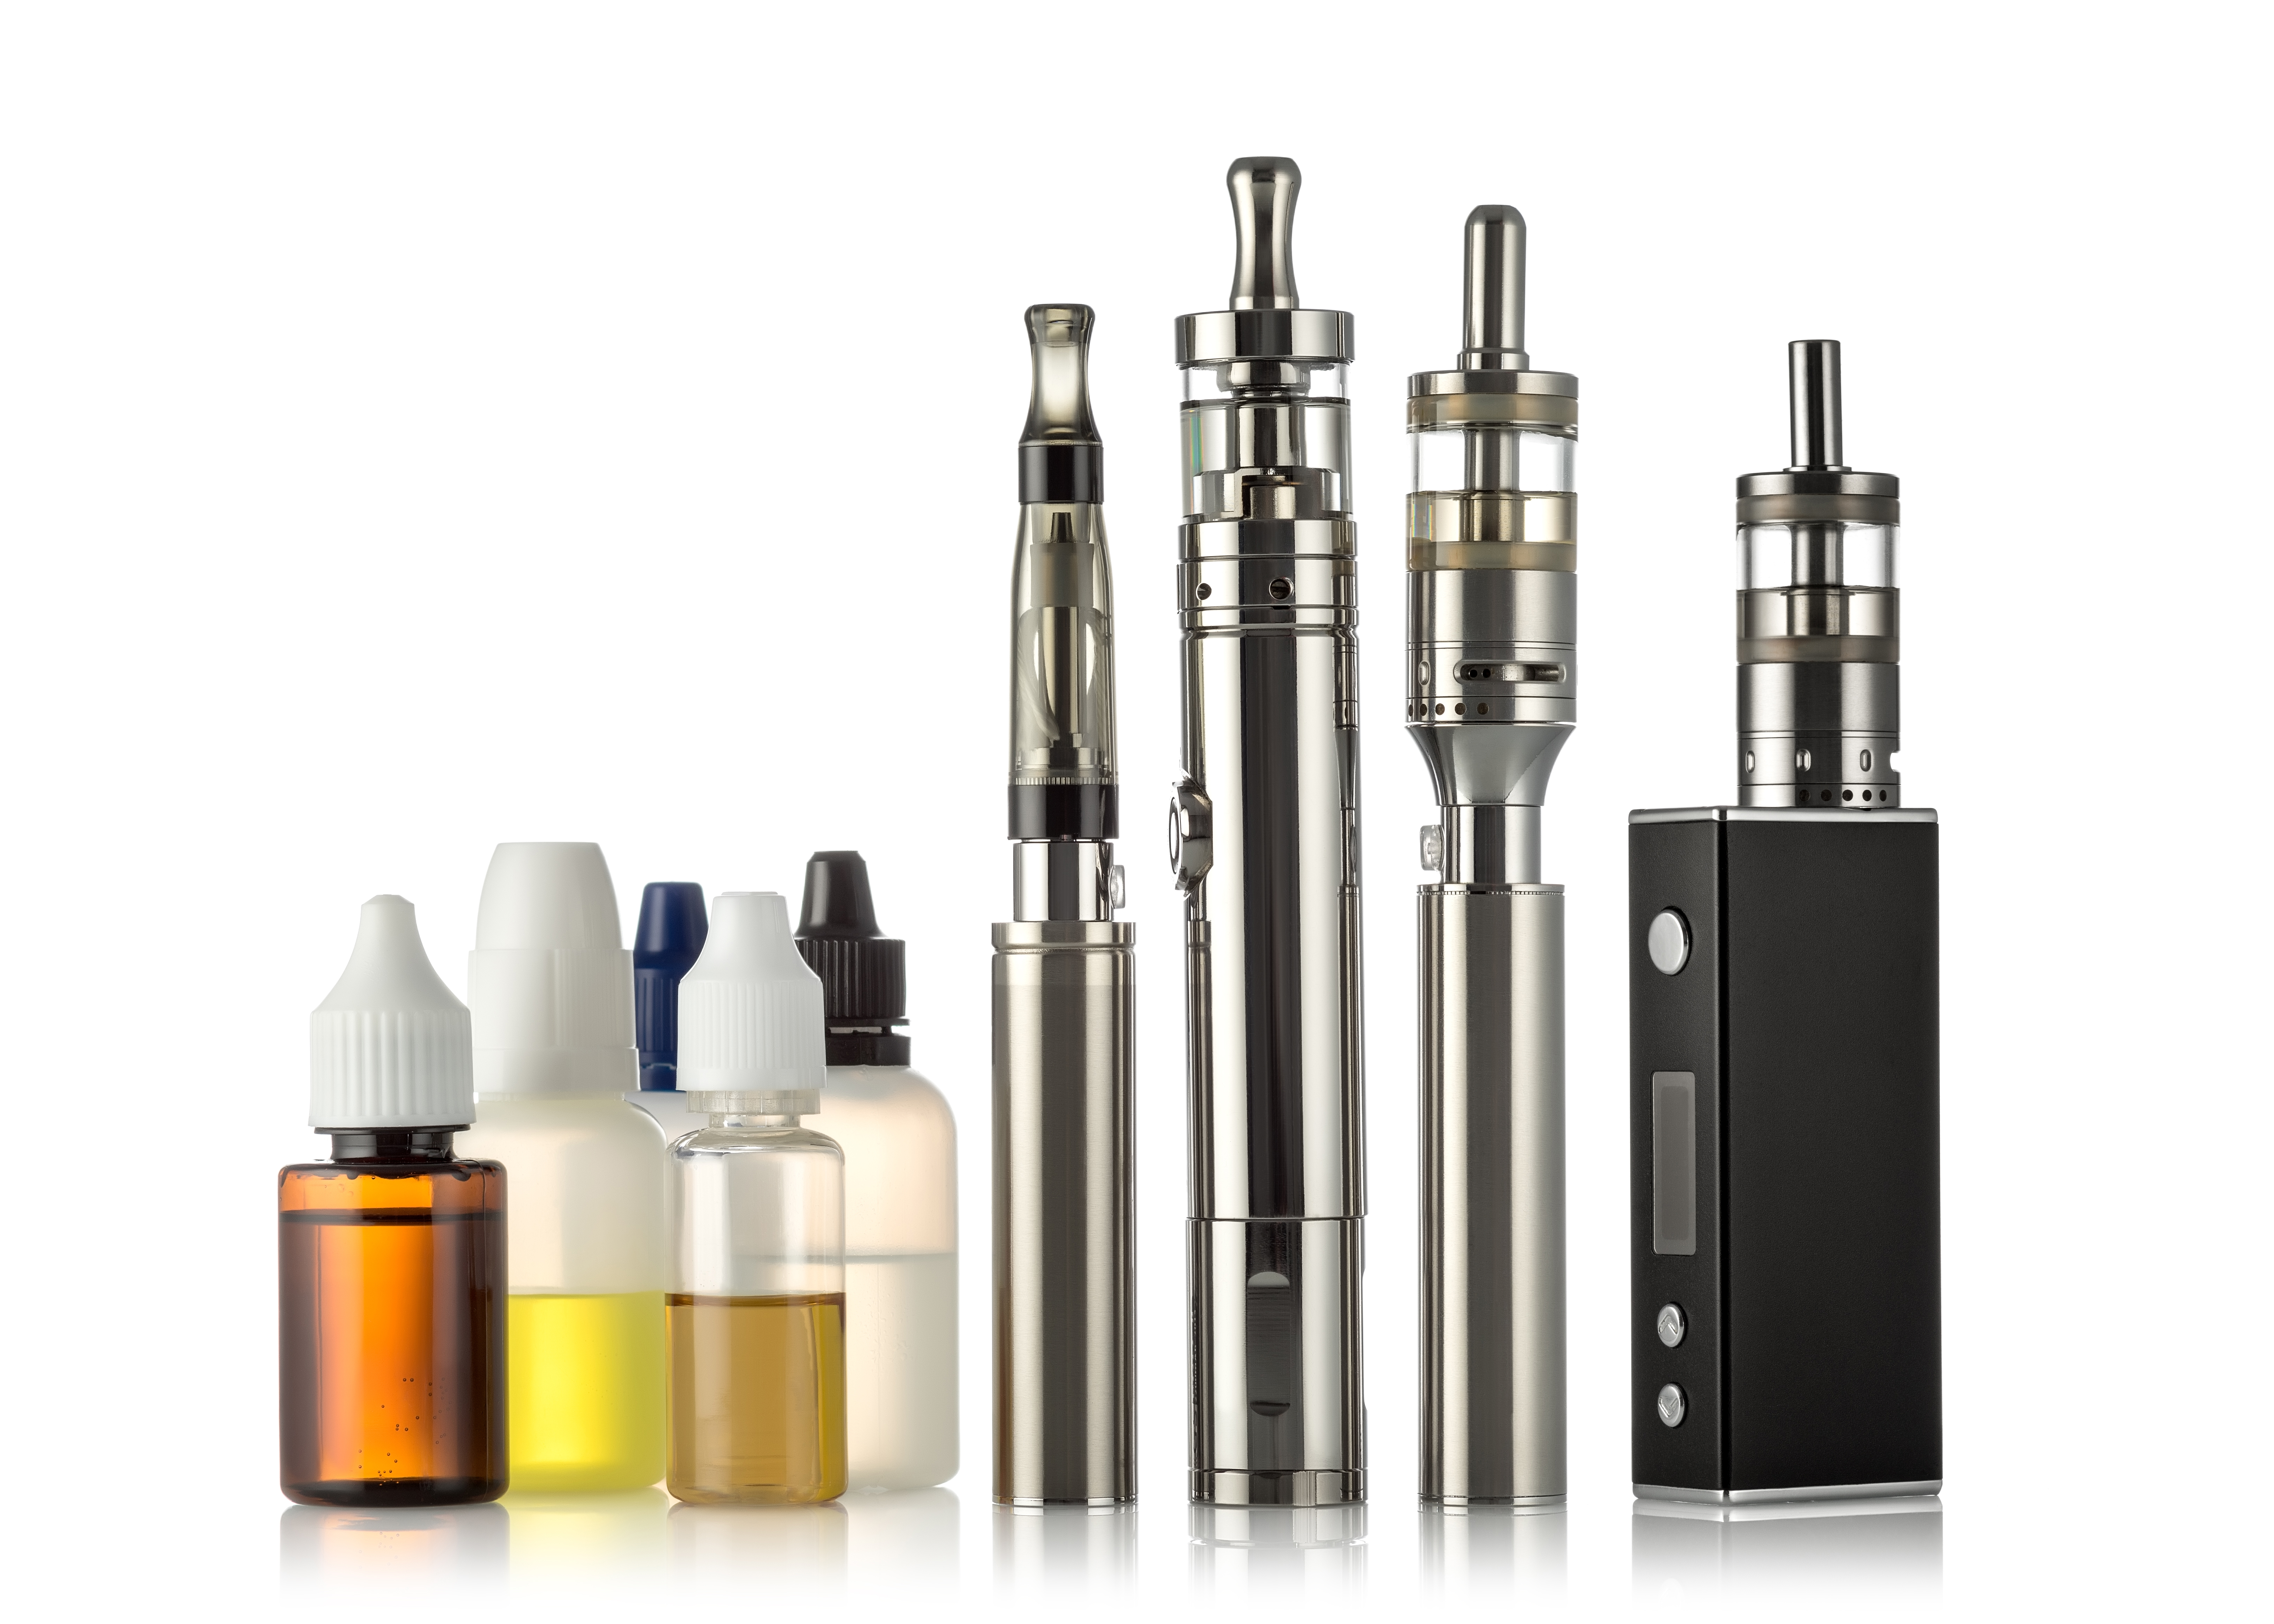 collection of ecigarettes and ejuice